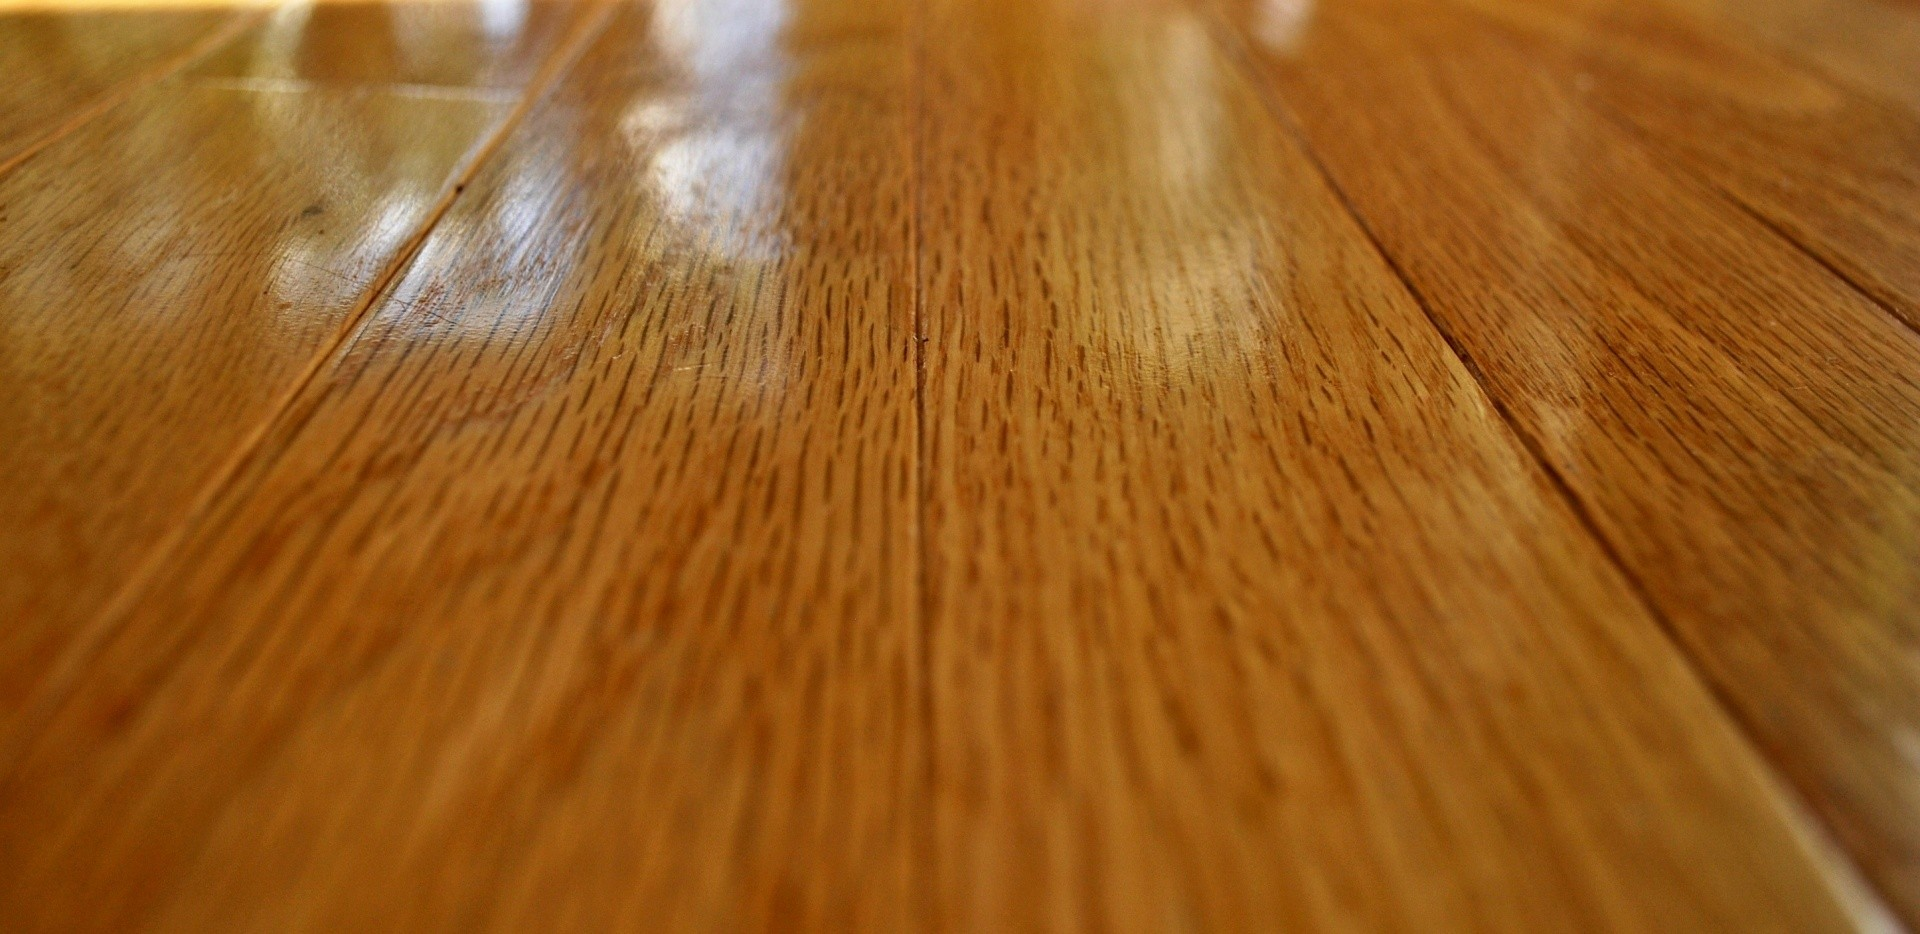 a zoom in on a plank of hardwood floor